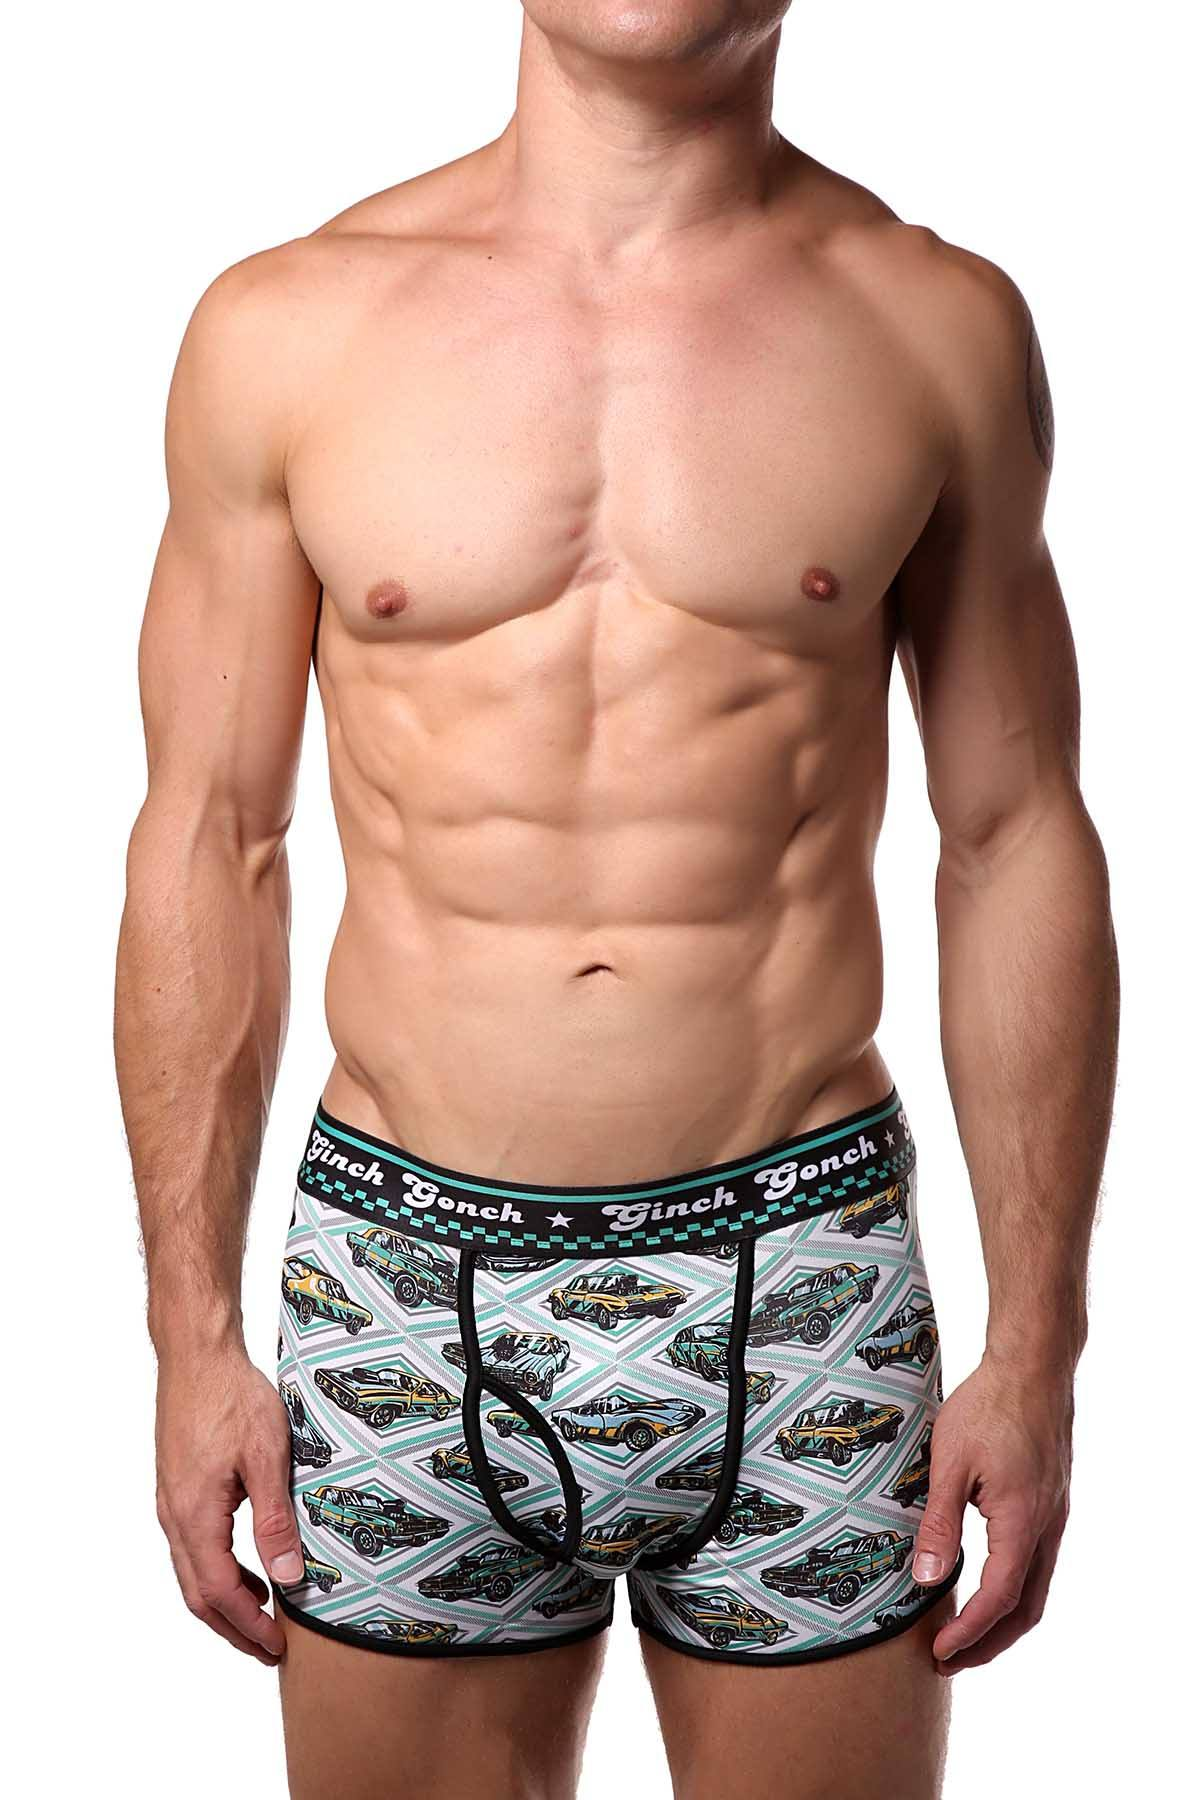 Ginch Gonch Vintage-Cars Sports-Brief (Trunk)